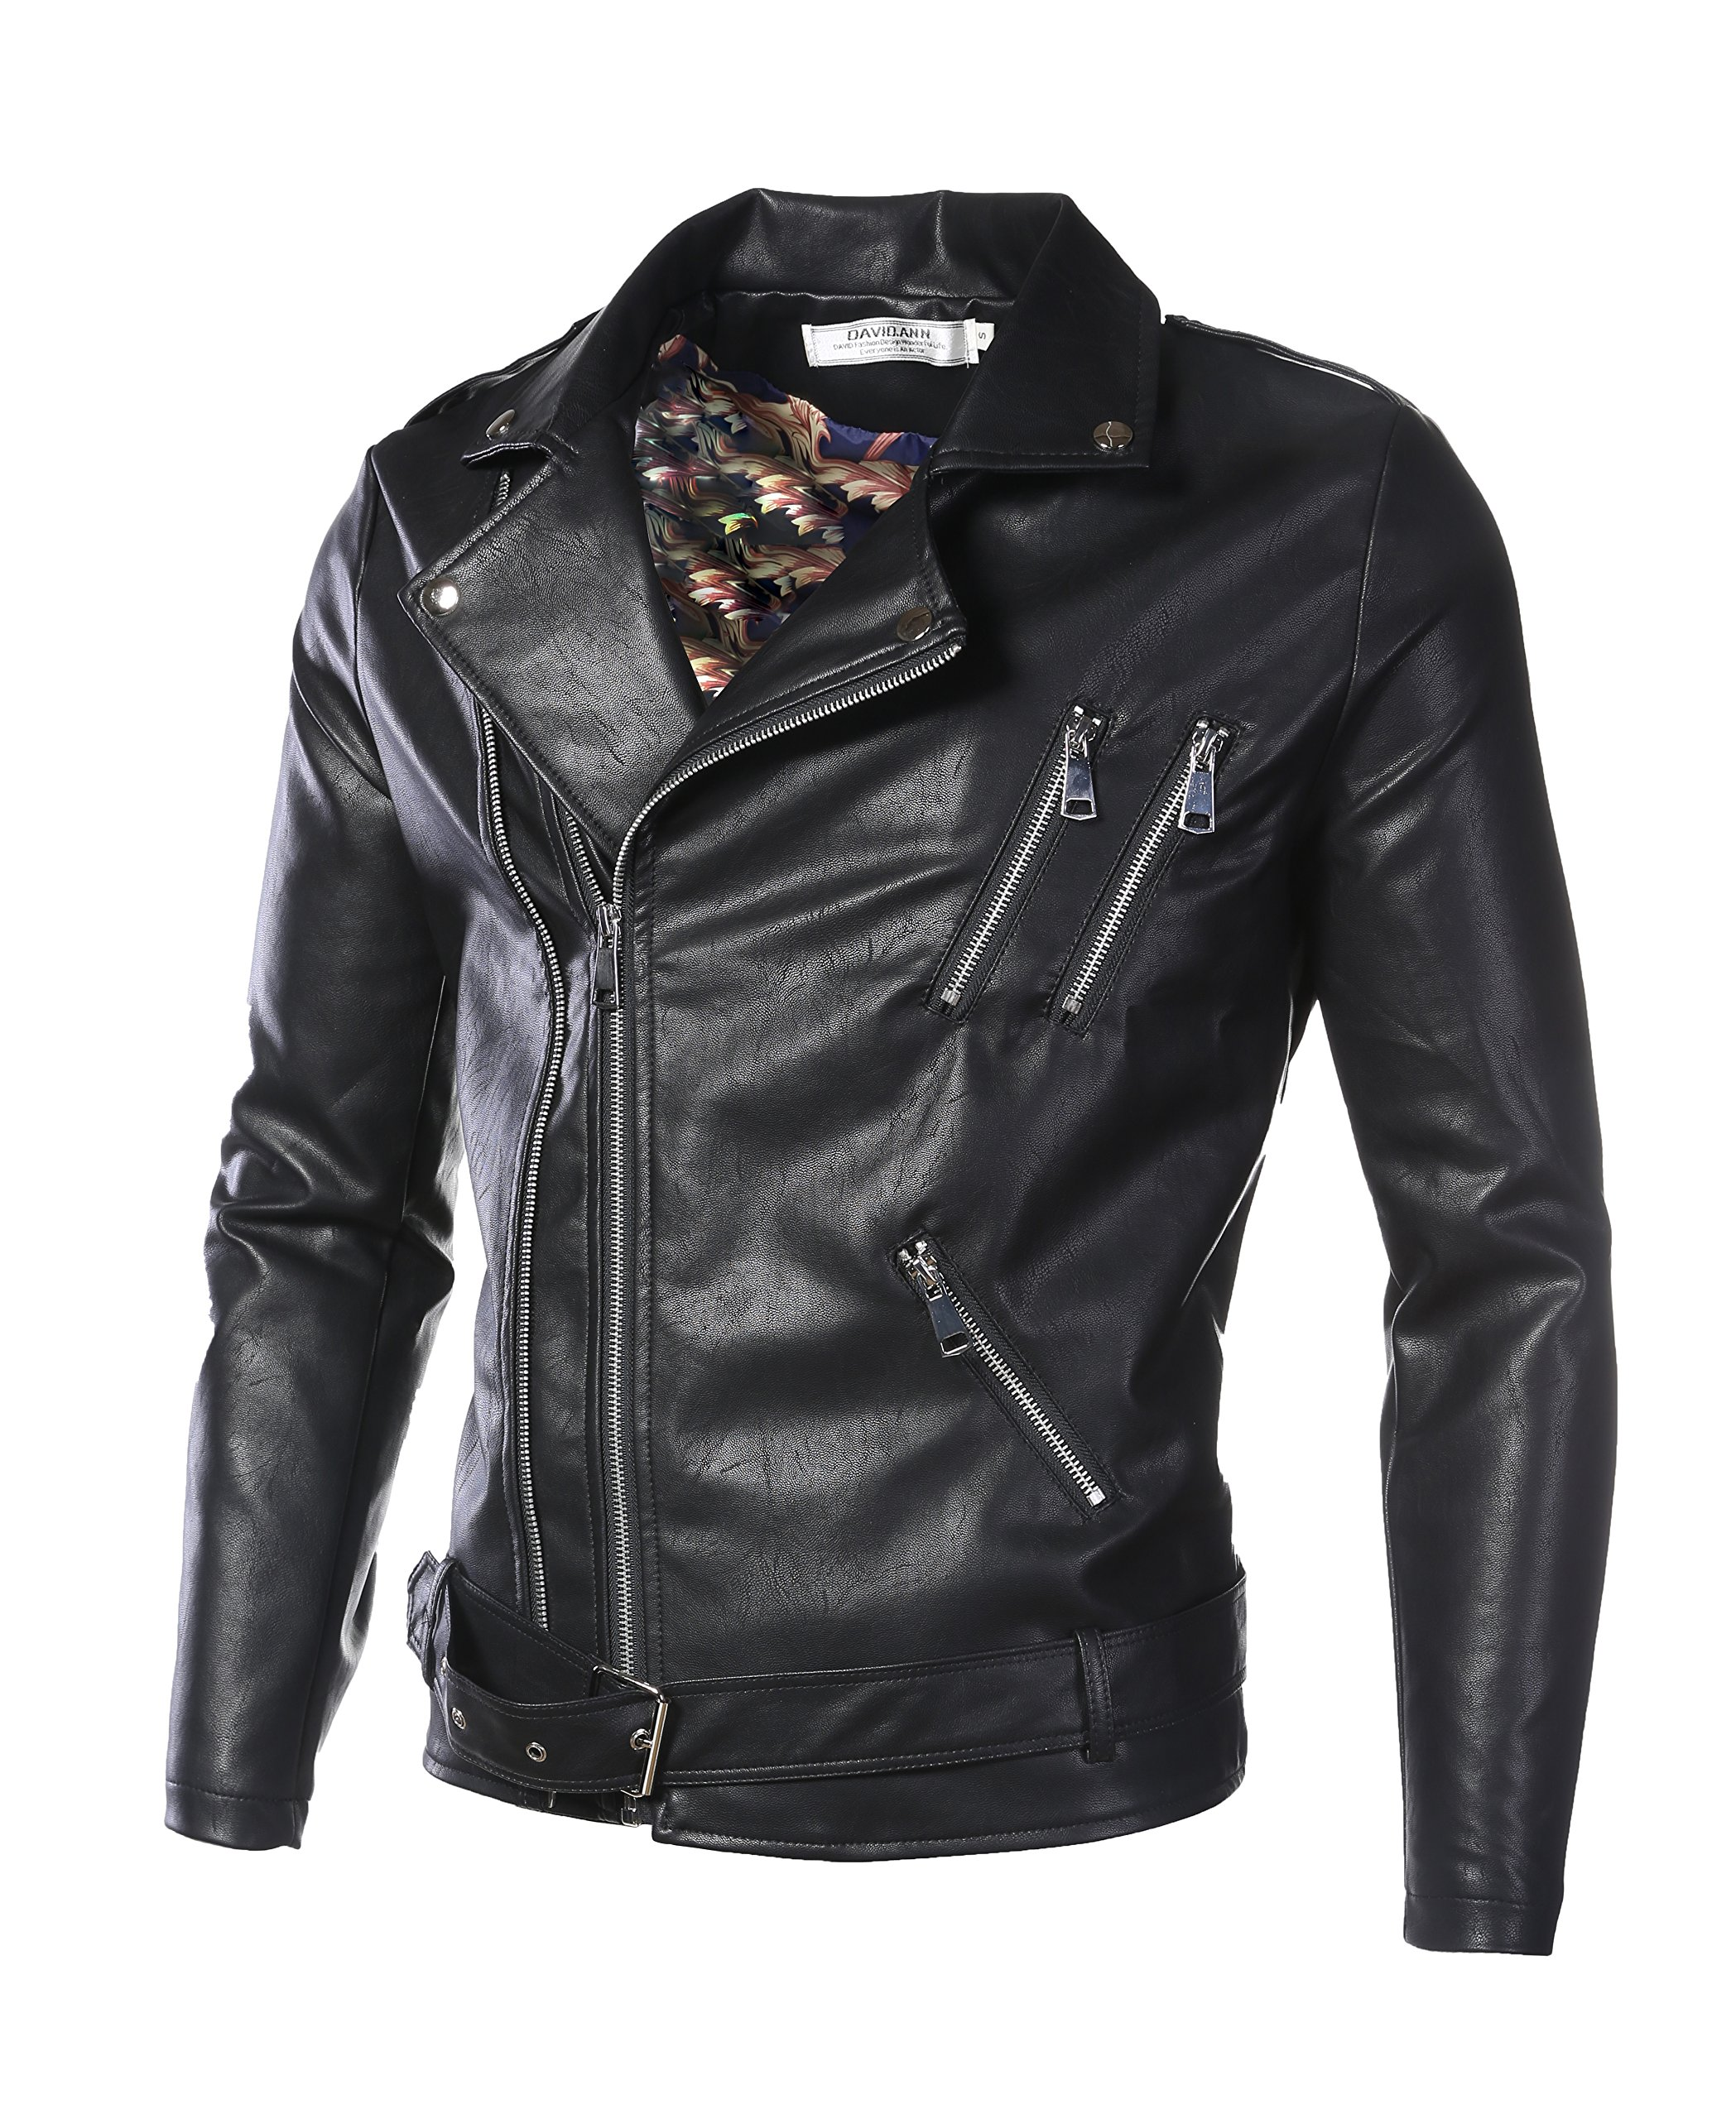 DAVID.ANN Men's Classic Faux-Leather Biker Zipper Jacket Coat,Black,Medium by DAVID.ANN